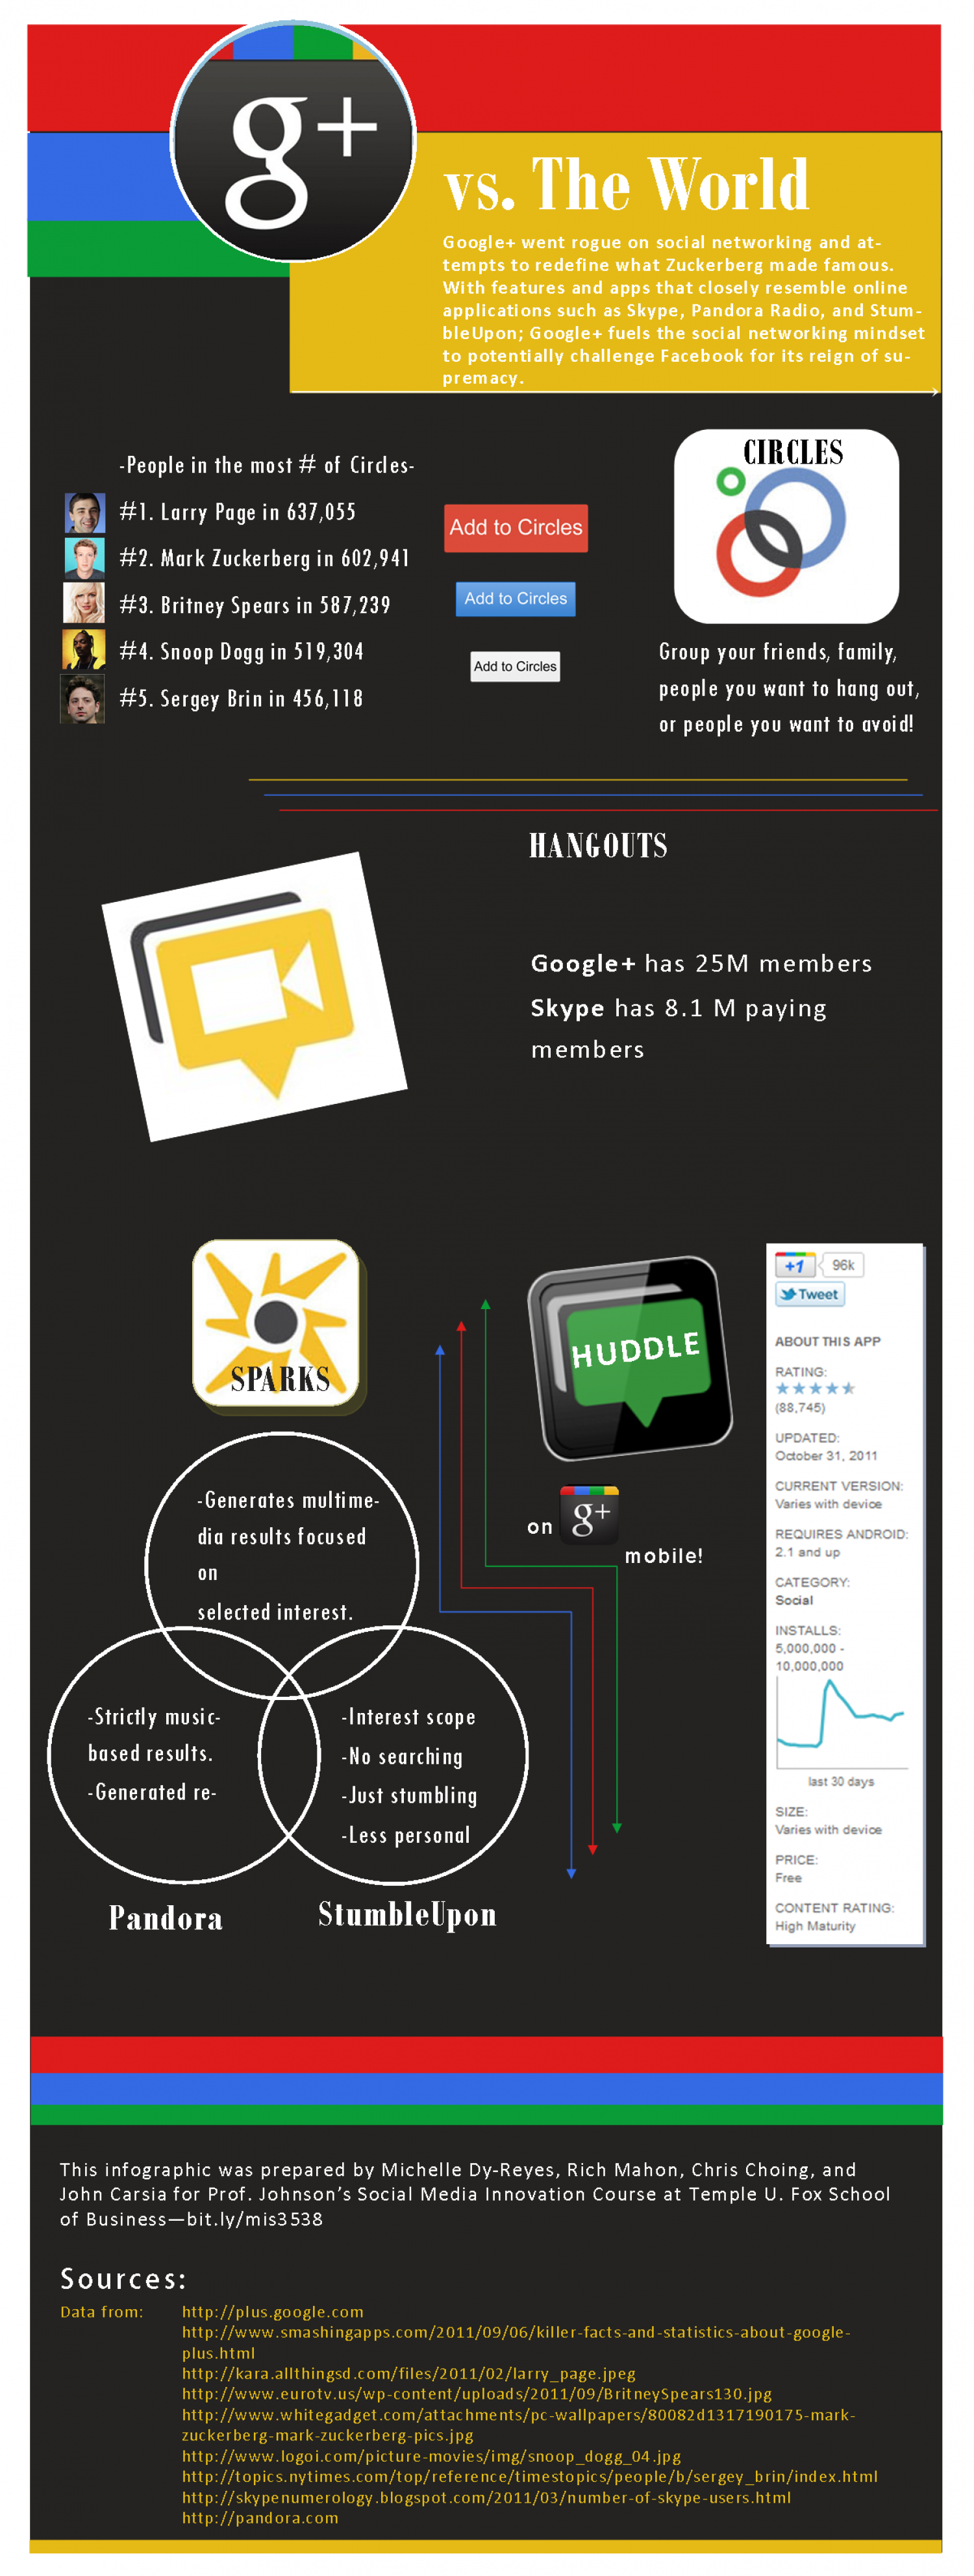 Google-Plus Versus the World Infographic